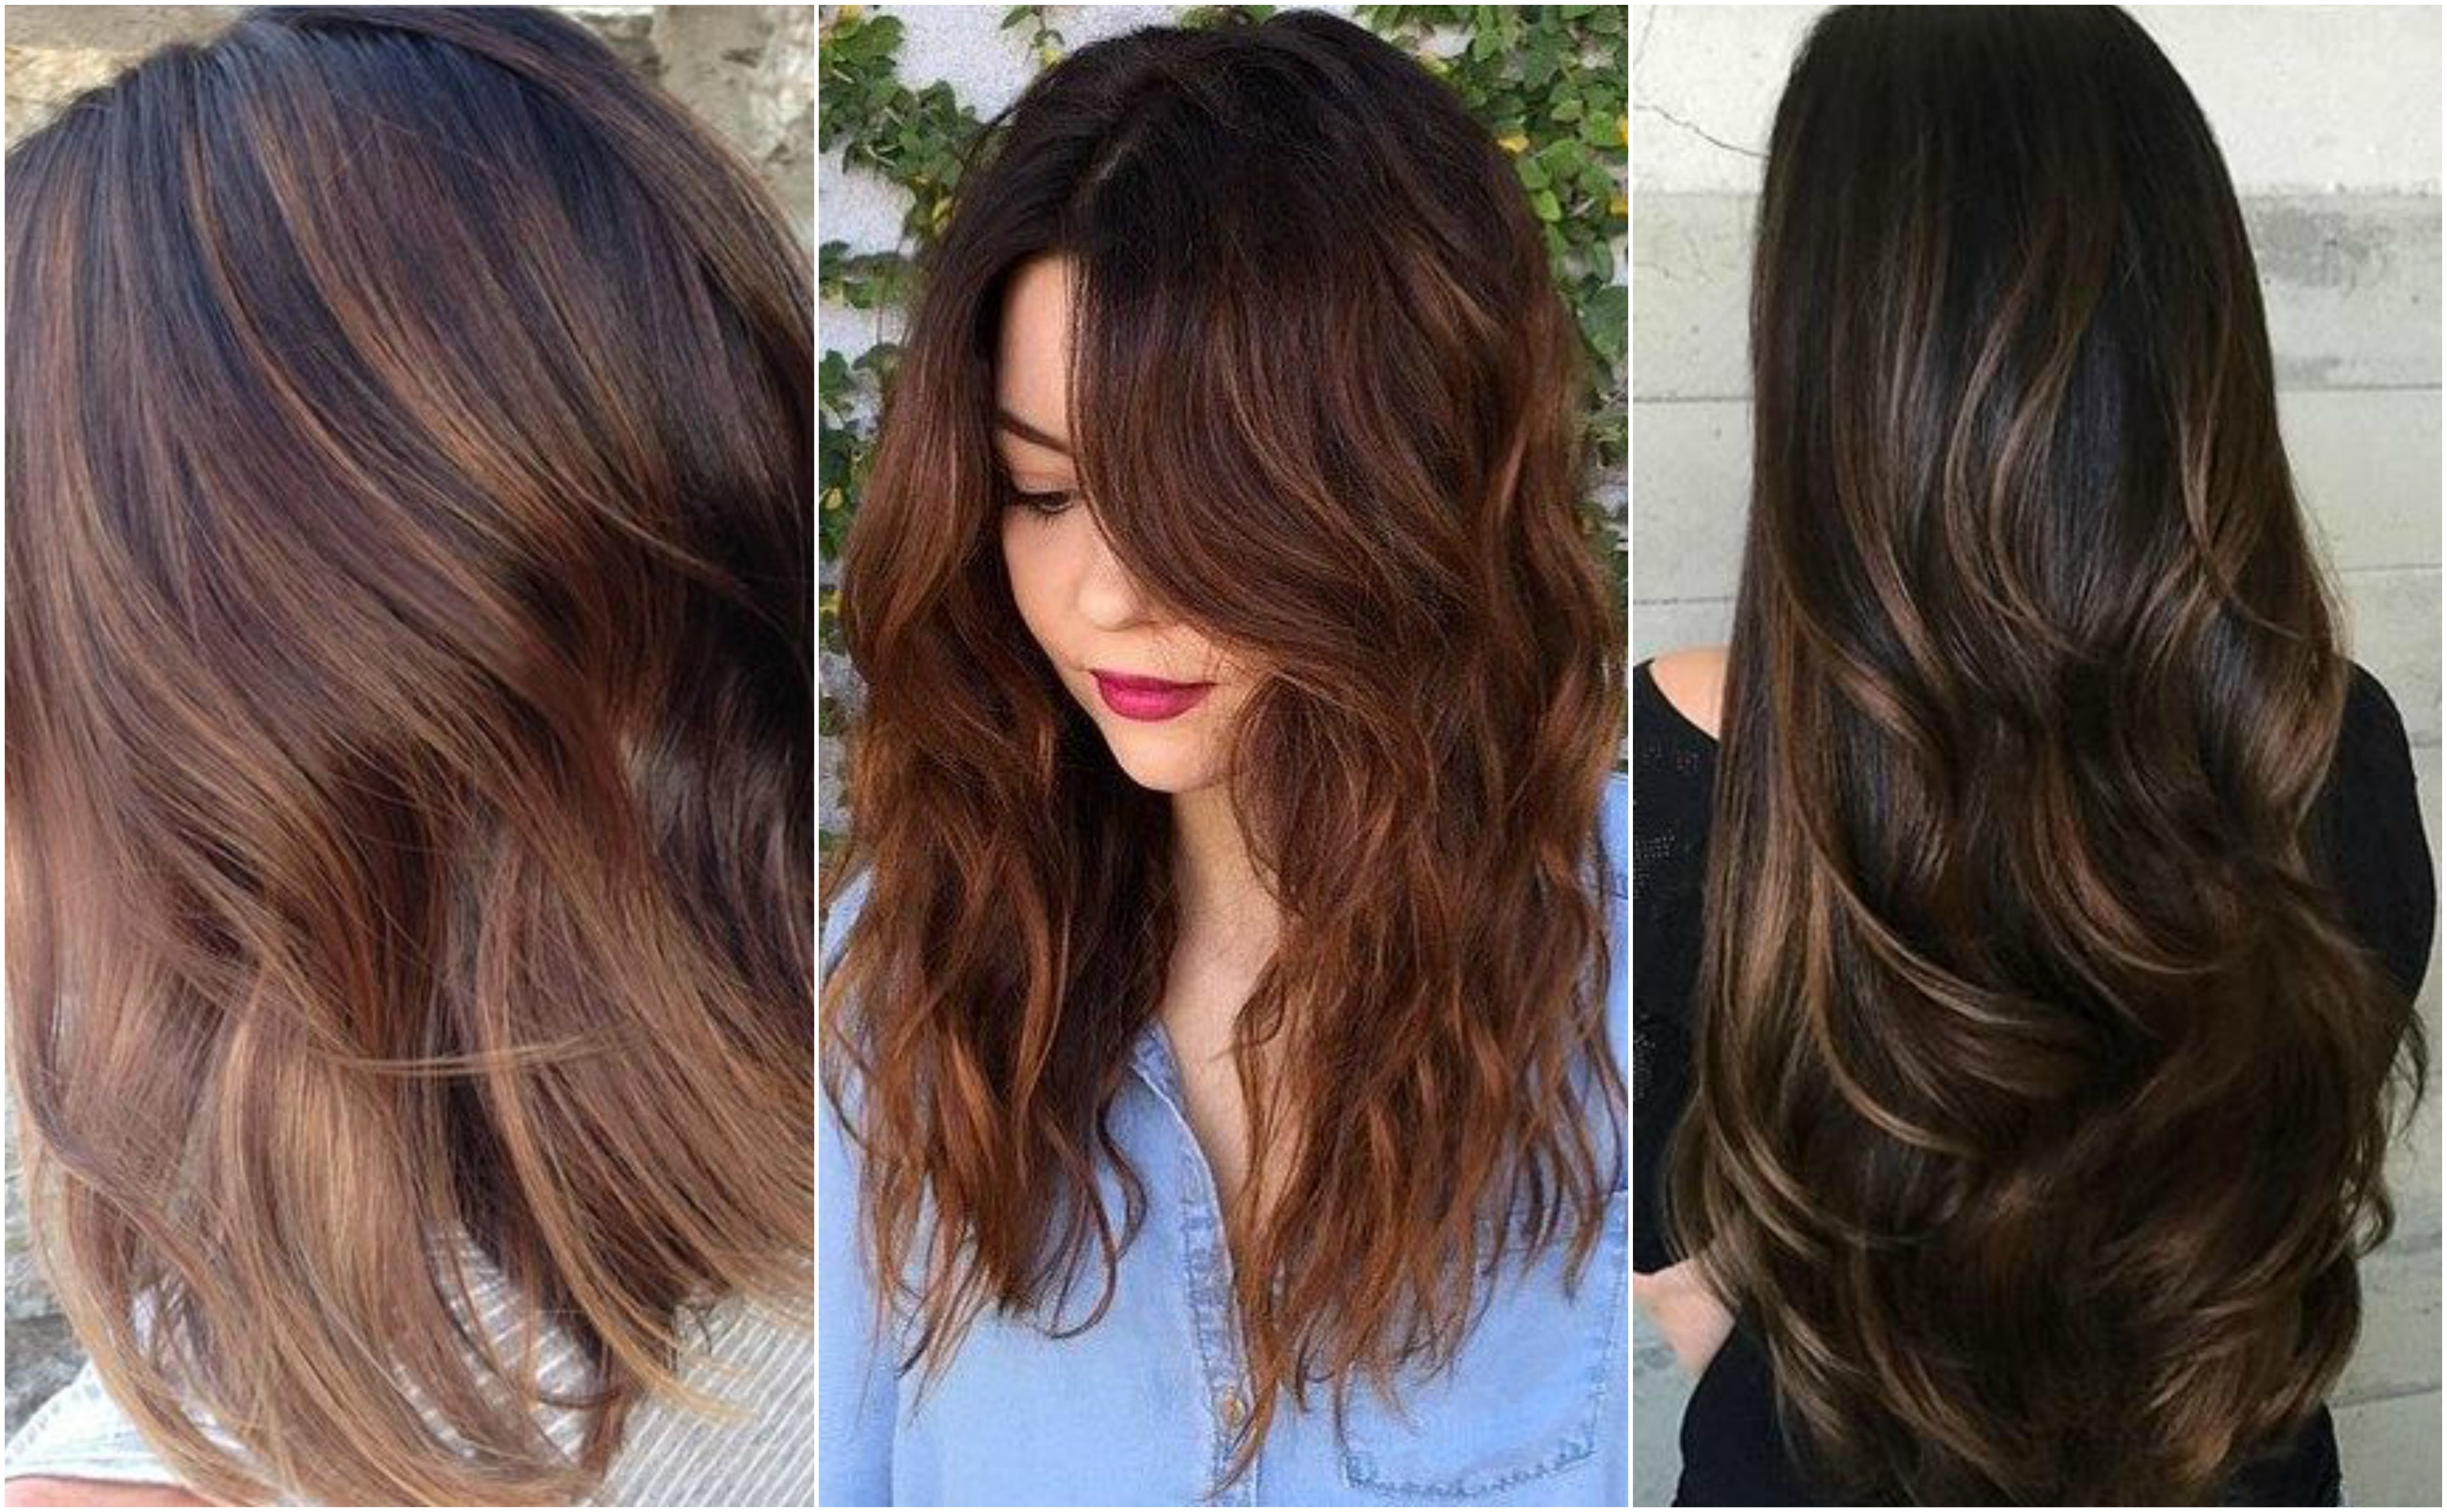 What Is Emma Stones Natural Hair Color